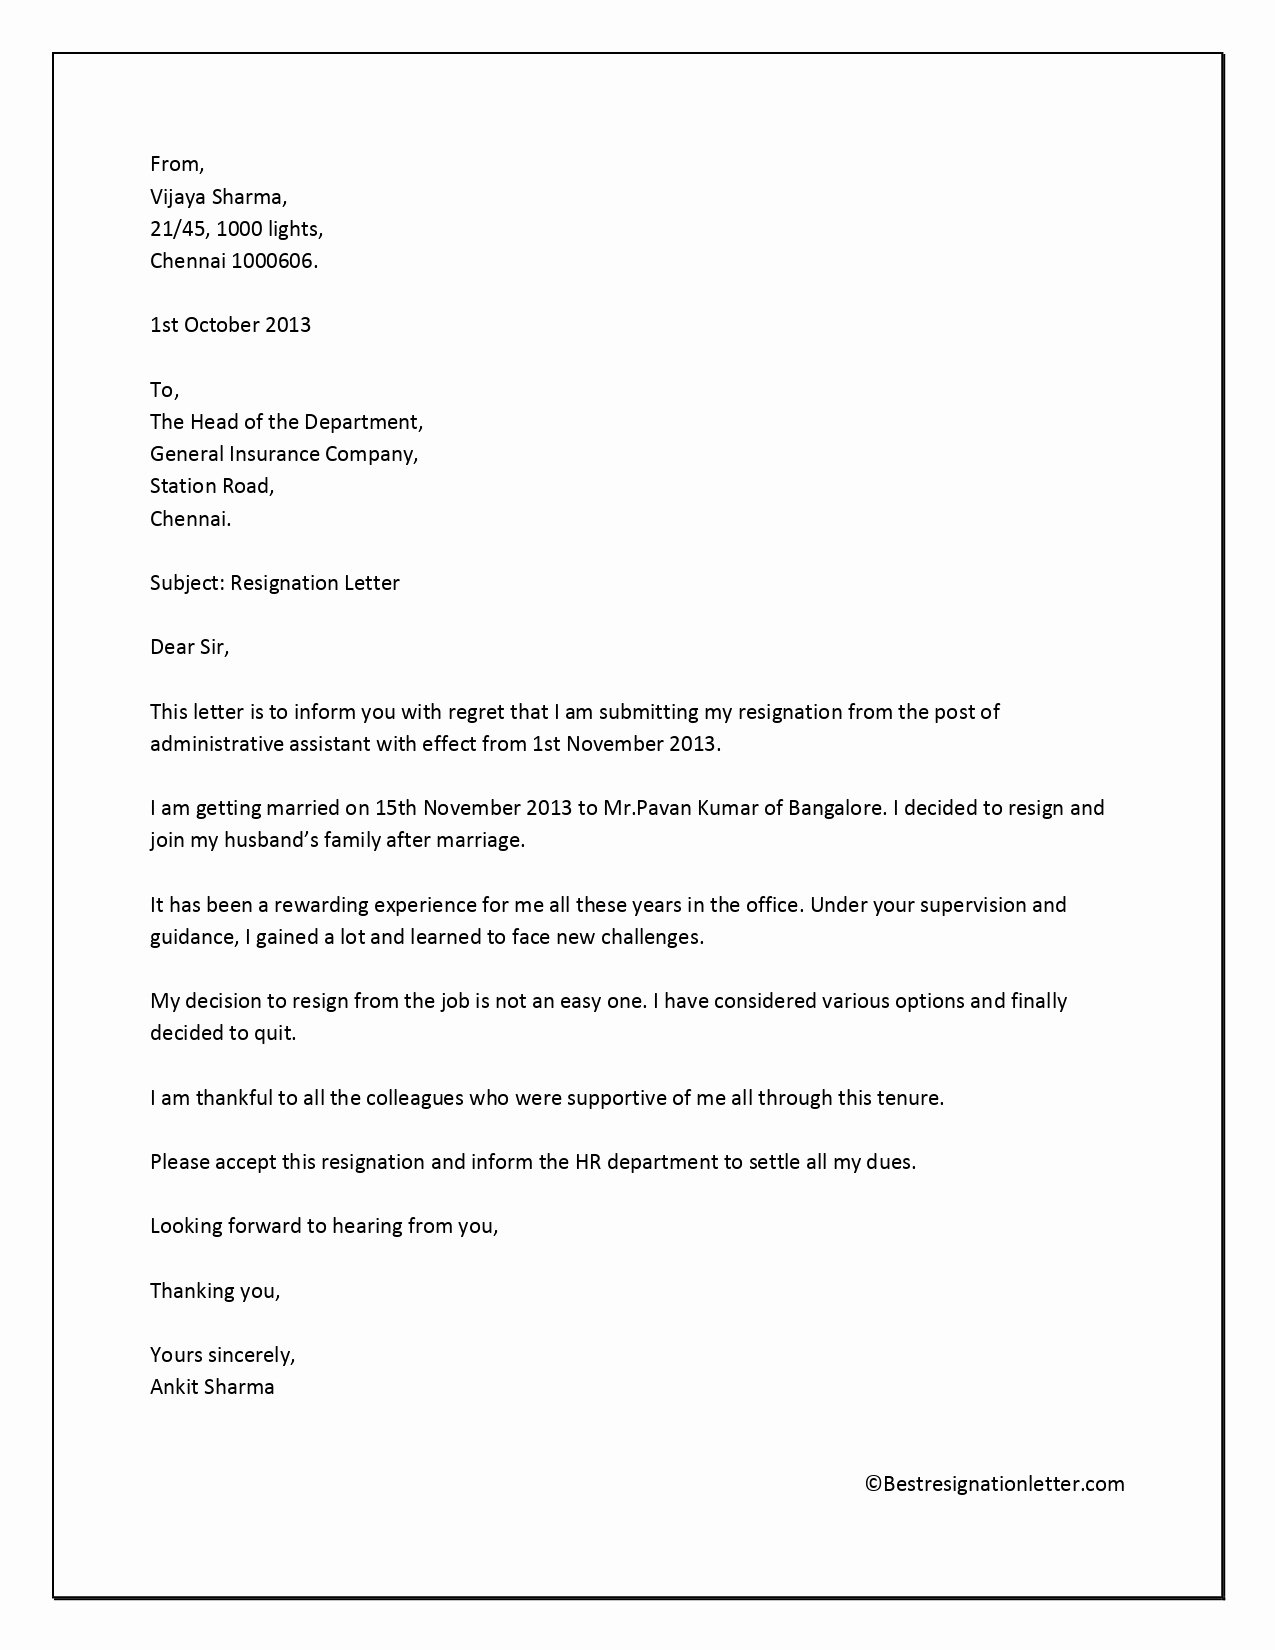 Resignation Letter for Family Reason Luxury 14 Resignation for Personal Reasons